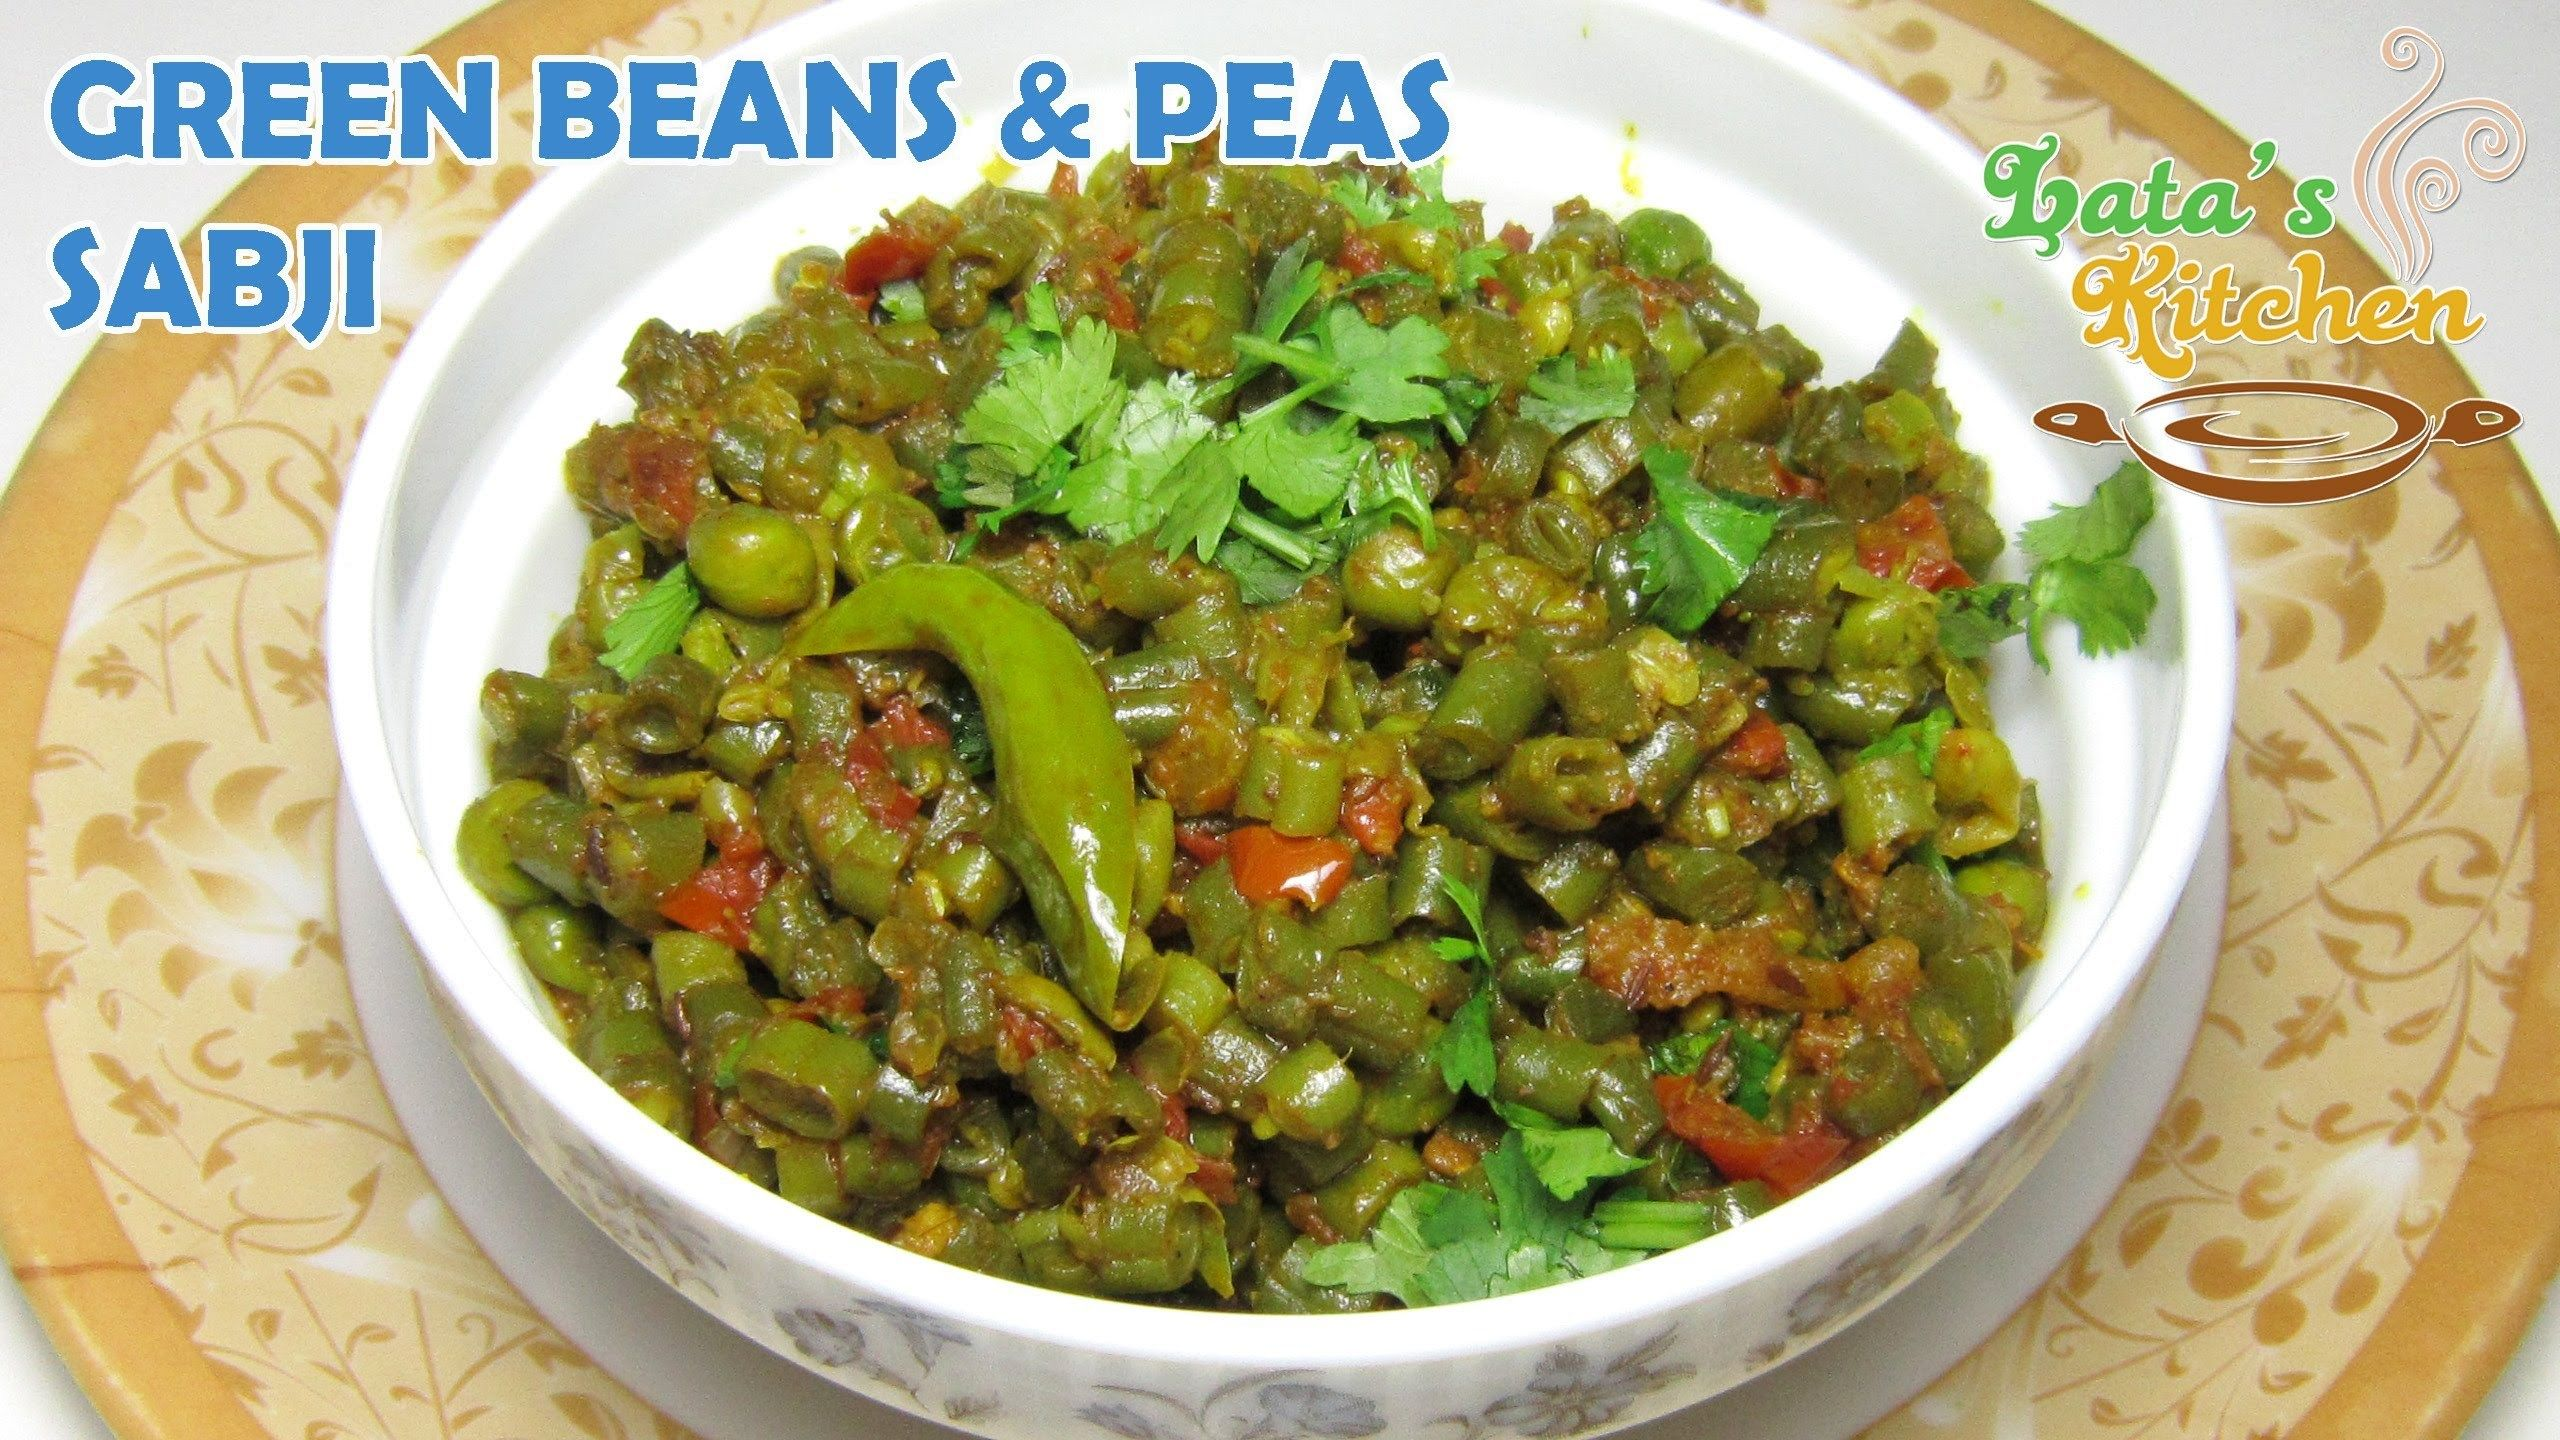 Green beans peas subzi recipe indian vegetarian recipe video in green beans peas subzi recipe indian vegetarian recipe video in hindi latas kitchen forumfinder Image collections